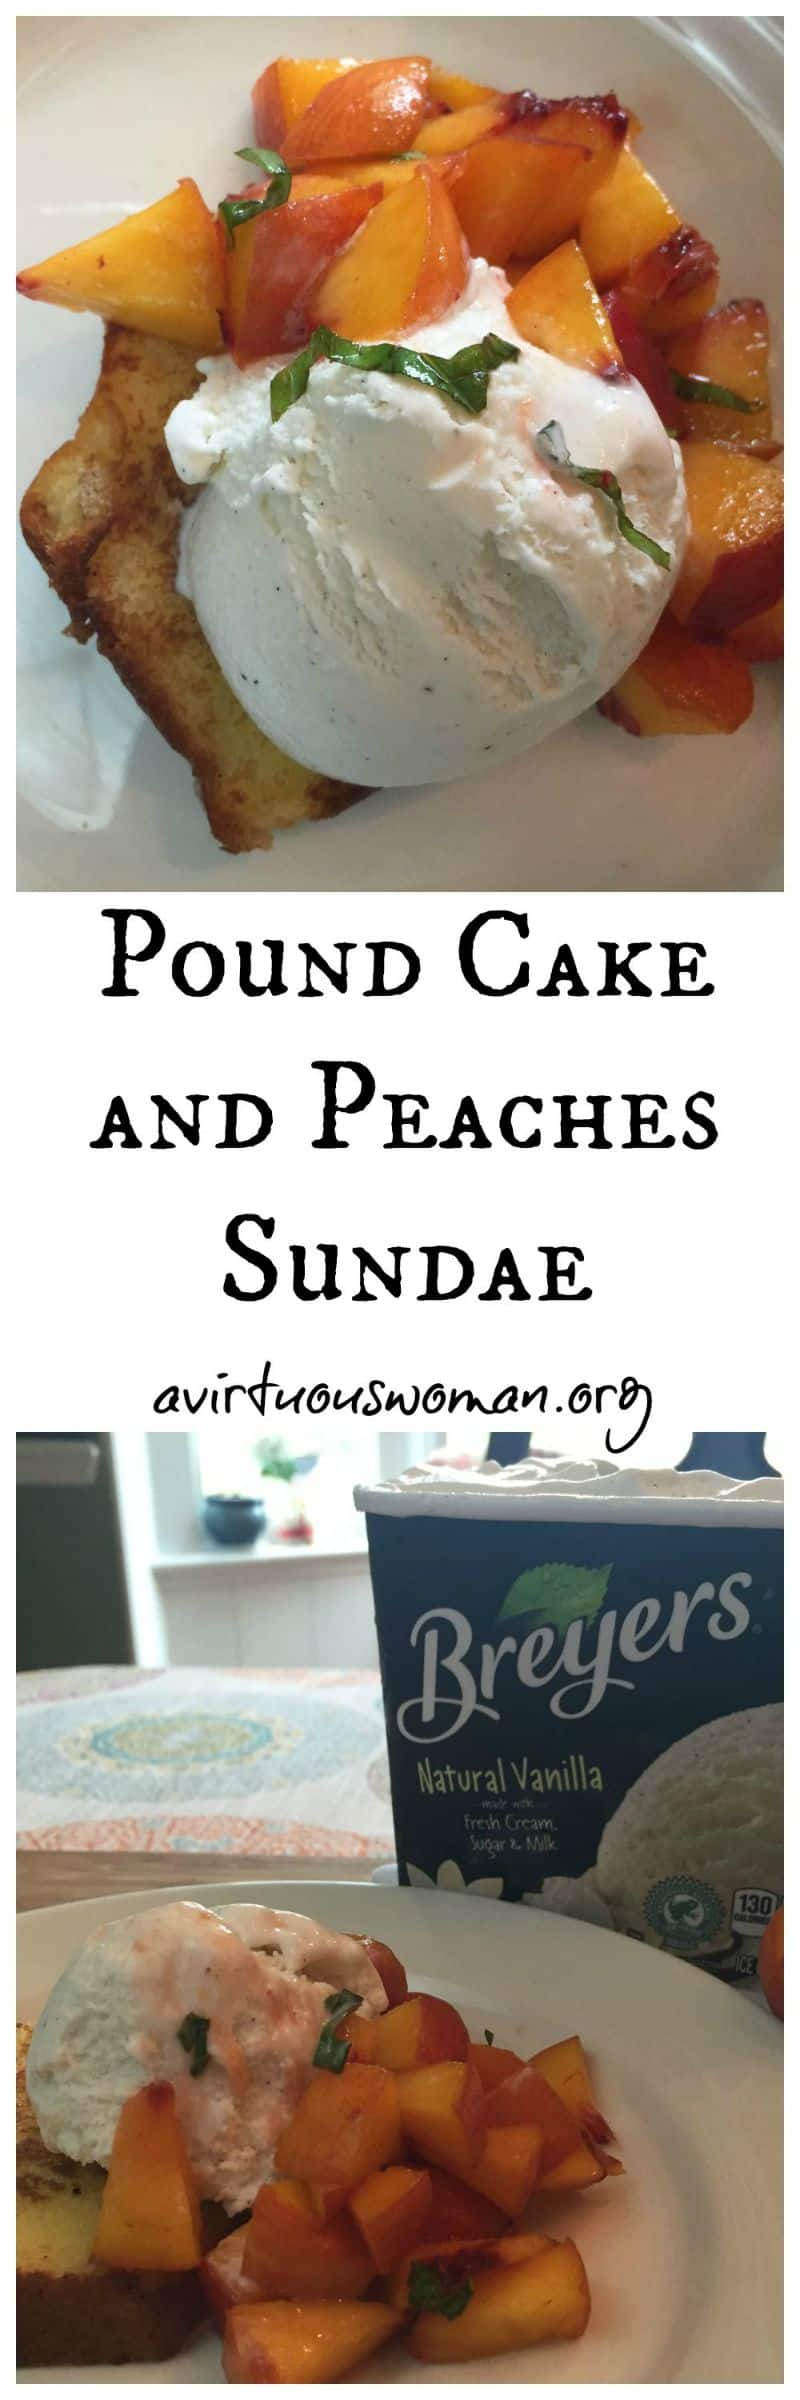 Pound Cake and Peaches Sundae @ AVirtuousWoman.org